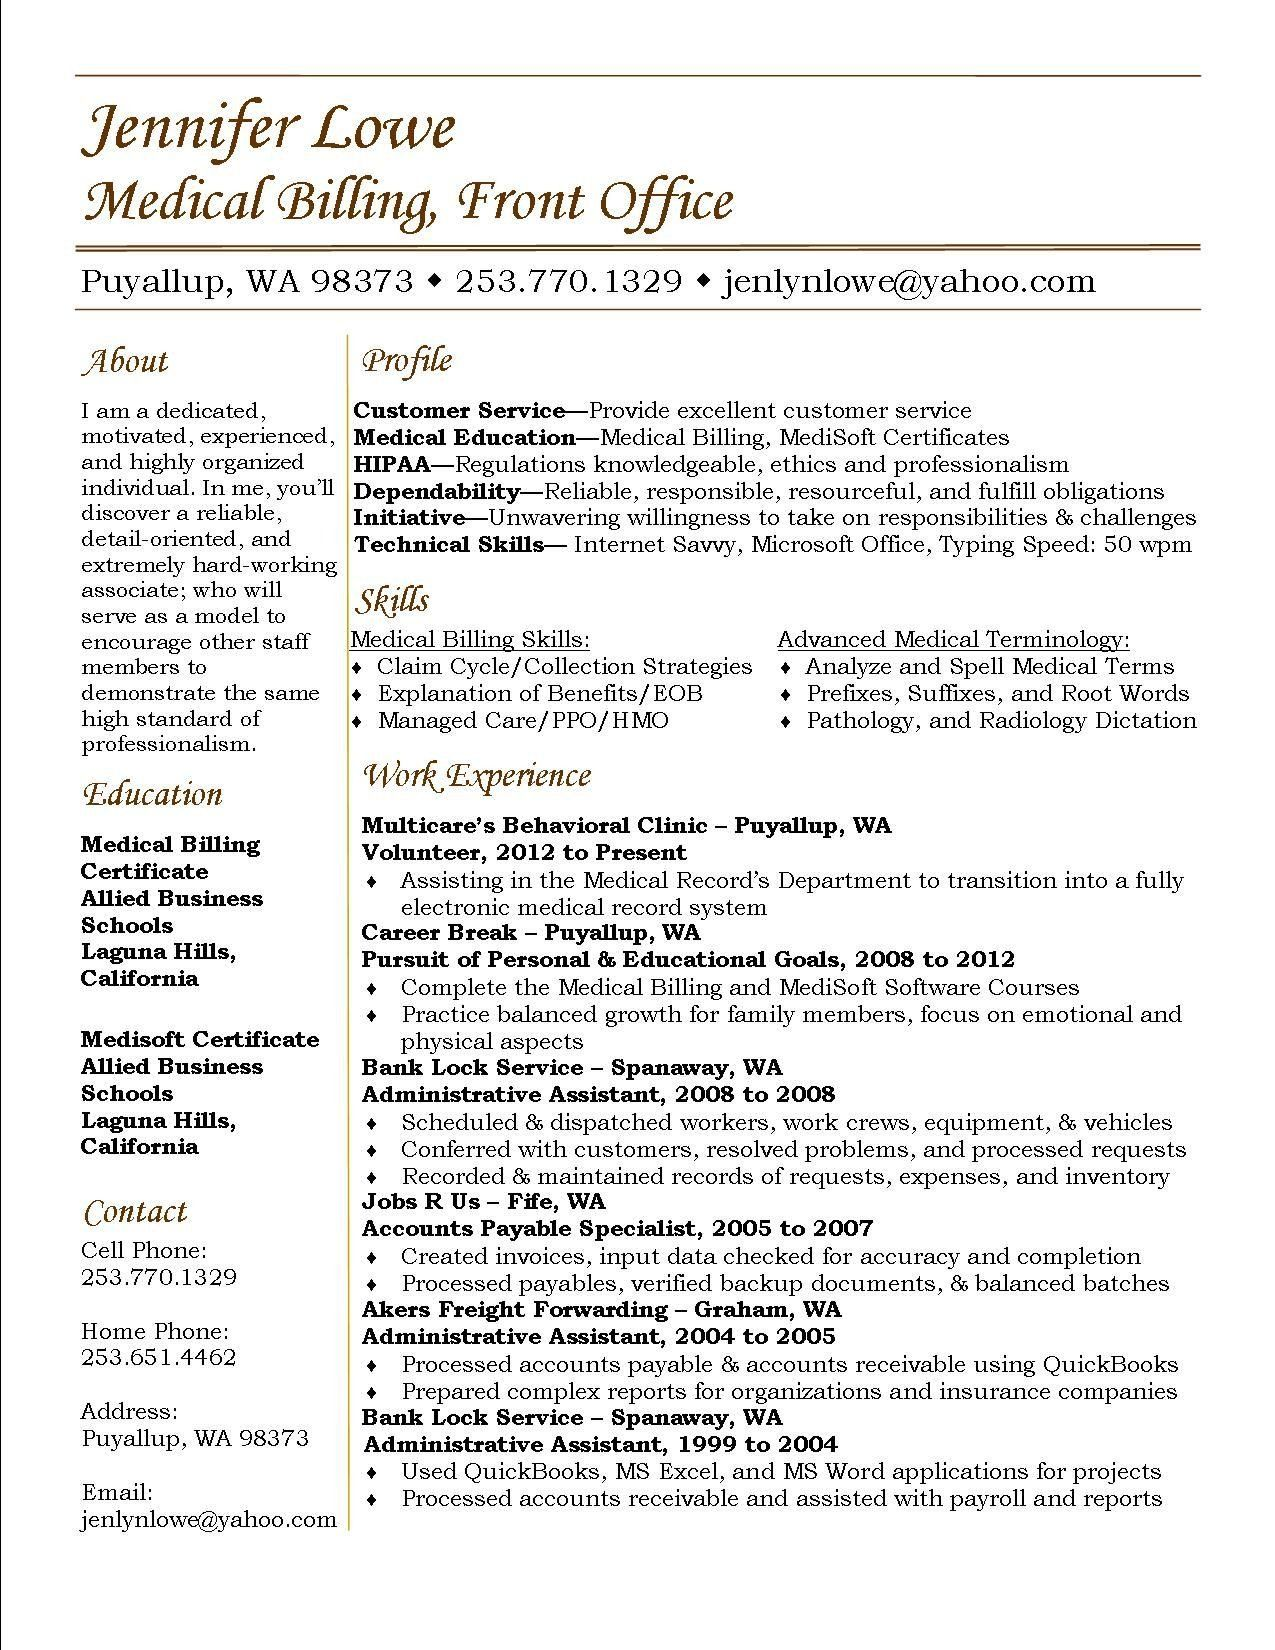 Accounts Receivable Specialist Resume Luxury Billing Specialist Resume Sample Best Best Data Medical Resume Medical Assistant Resume Medical Billing And Coding